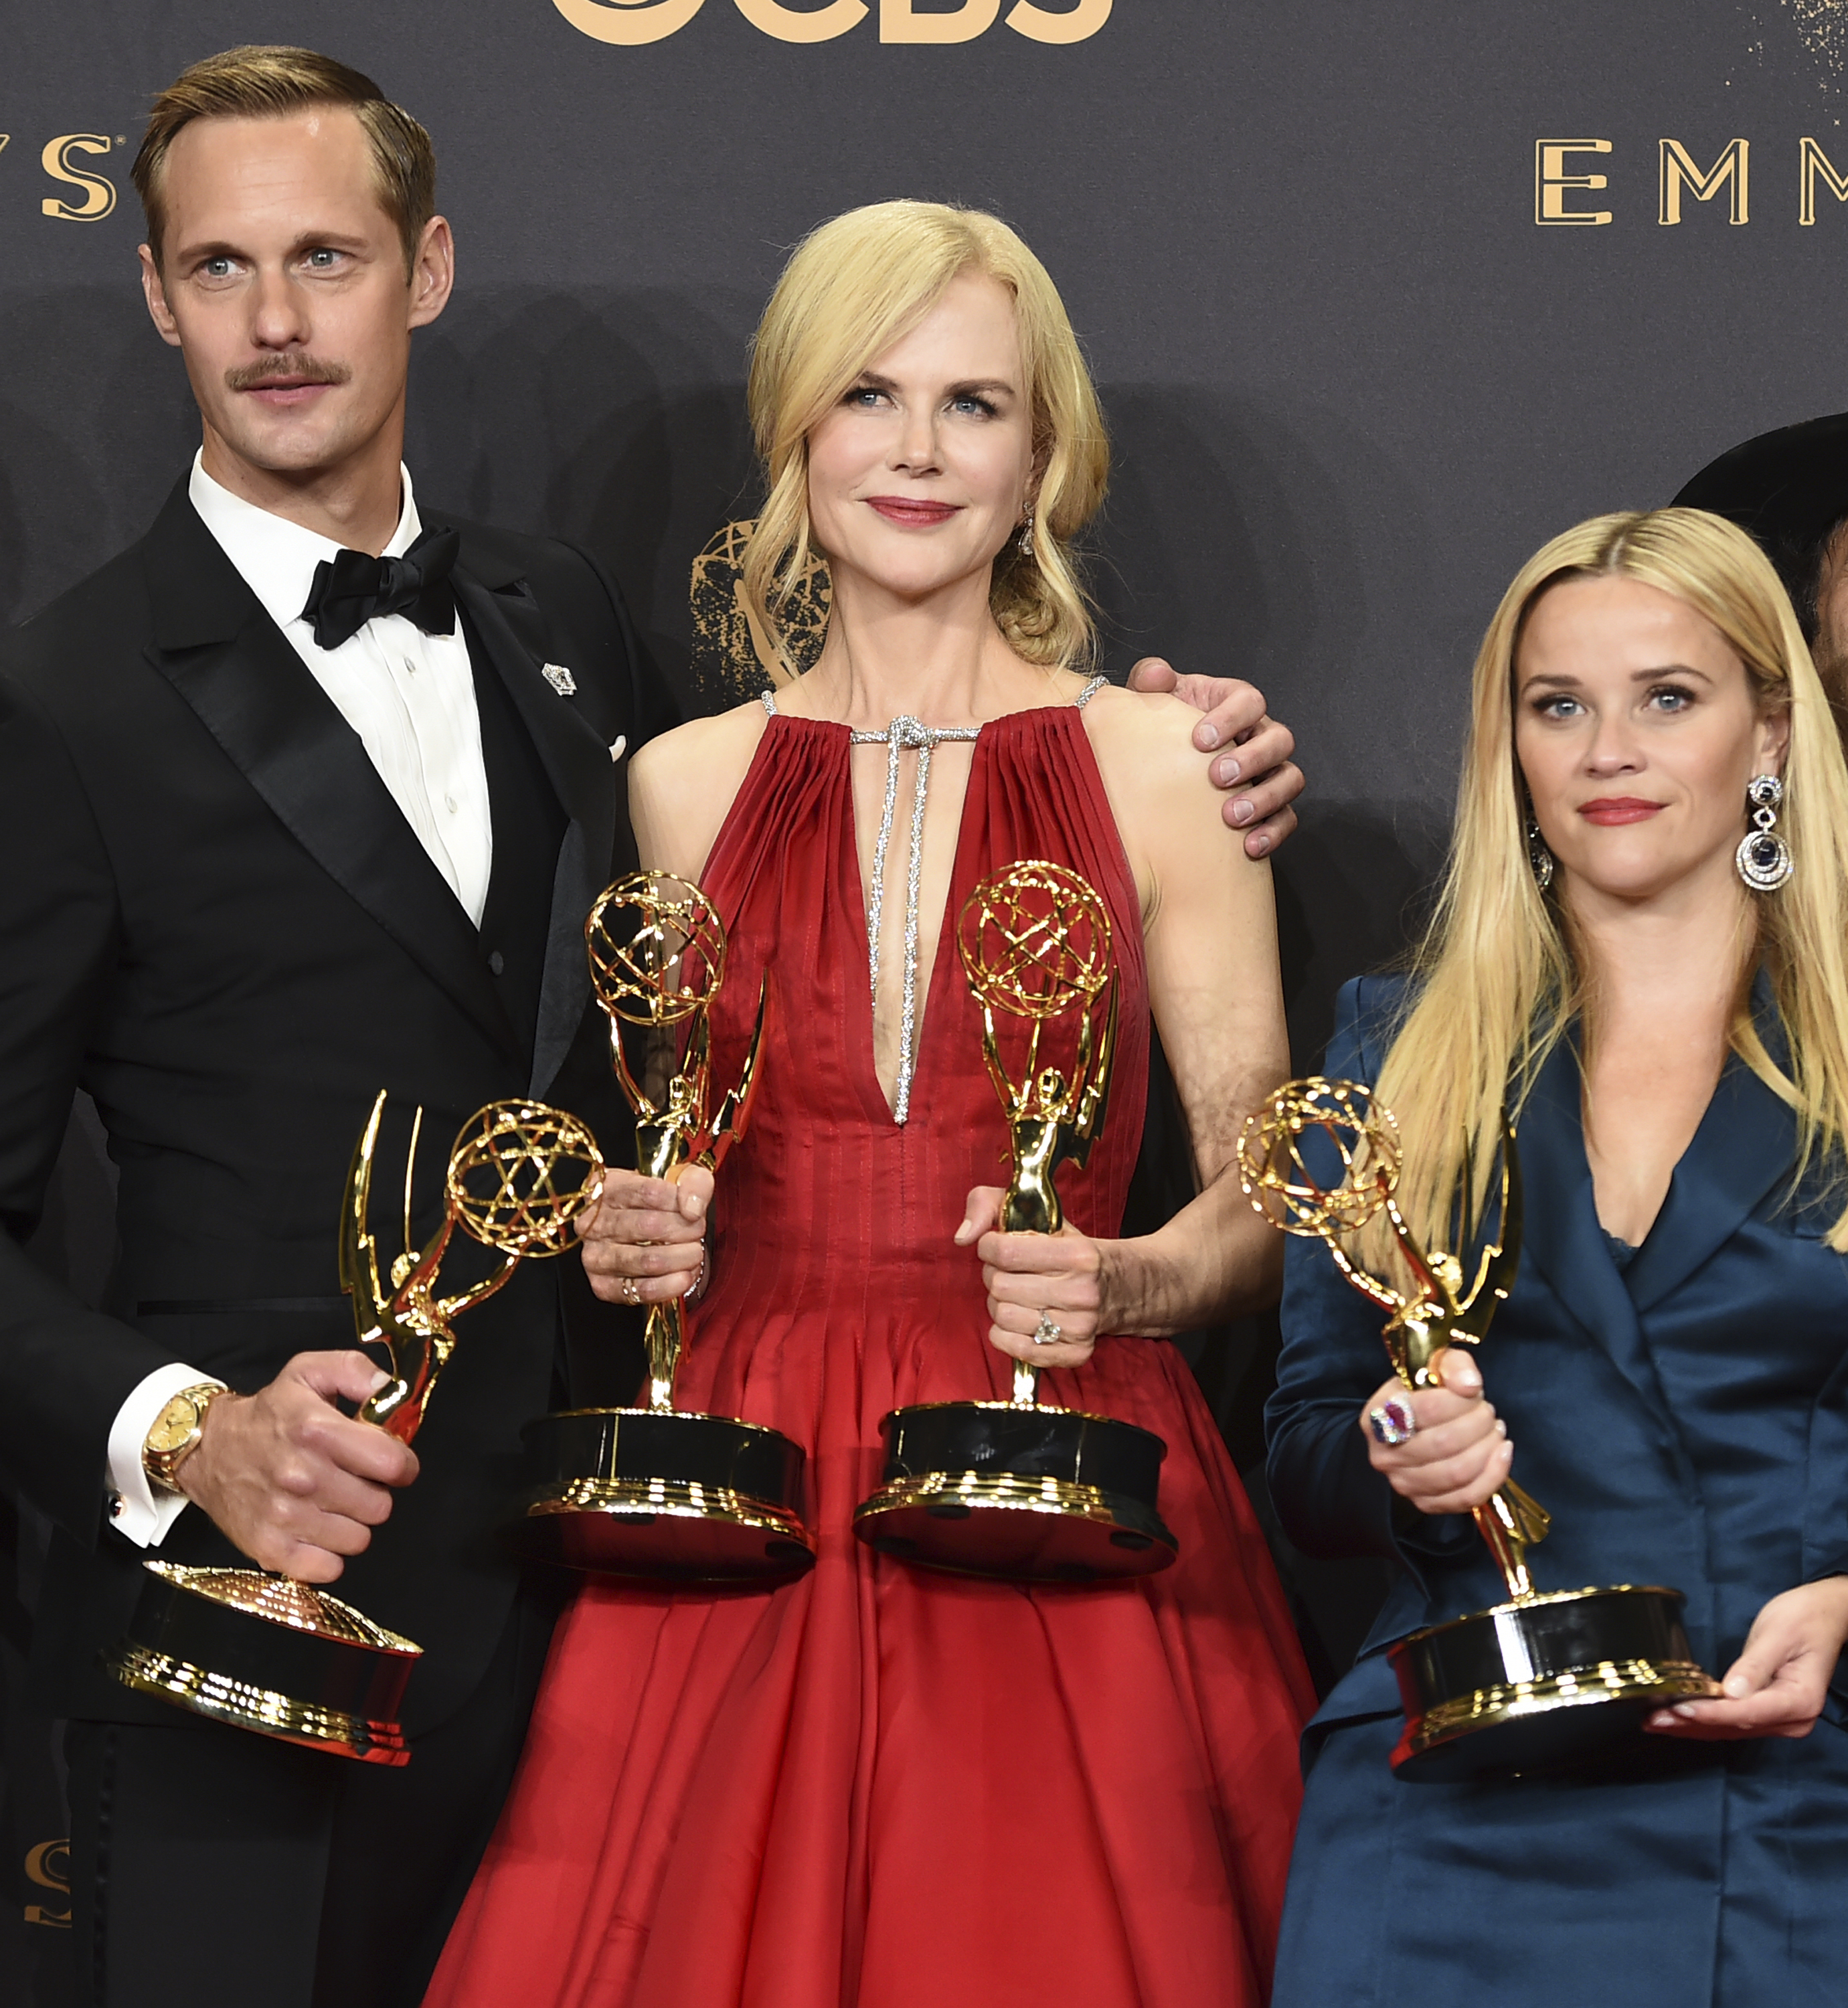 Alexander Skarsgard, Nicole Kidman, and Resse Witherspoon pose with their awards (Jordan Strauss/Invision/AP)